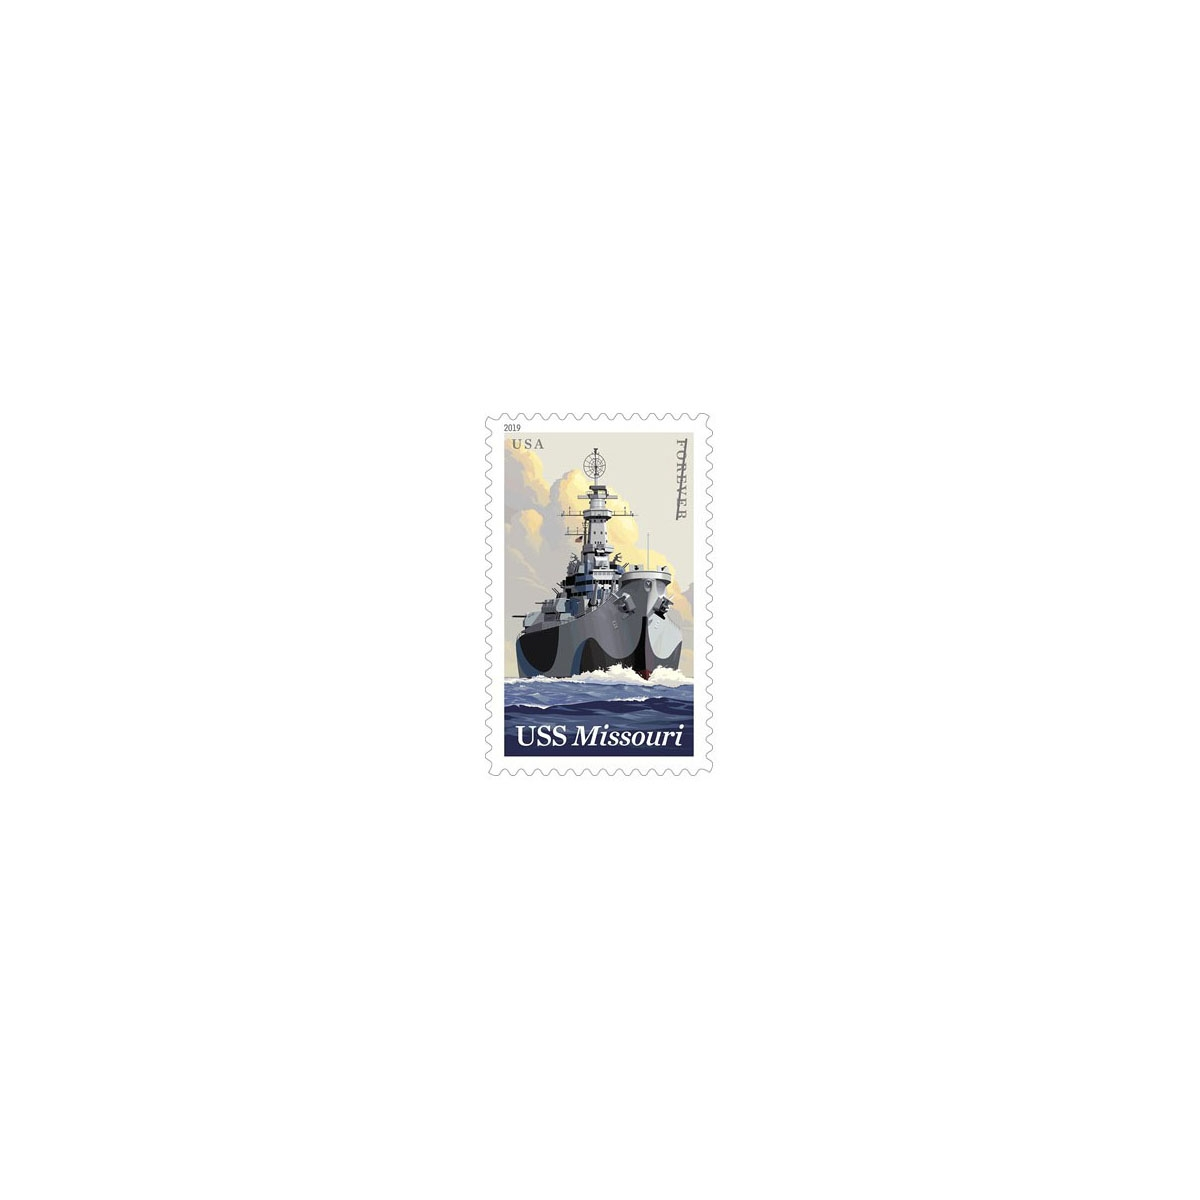 GENUINE USS MISSOURI FOREVER STAMP LAPEL PIN